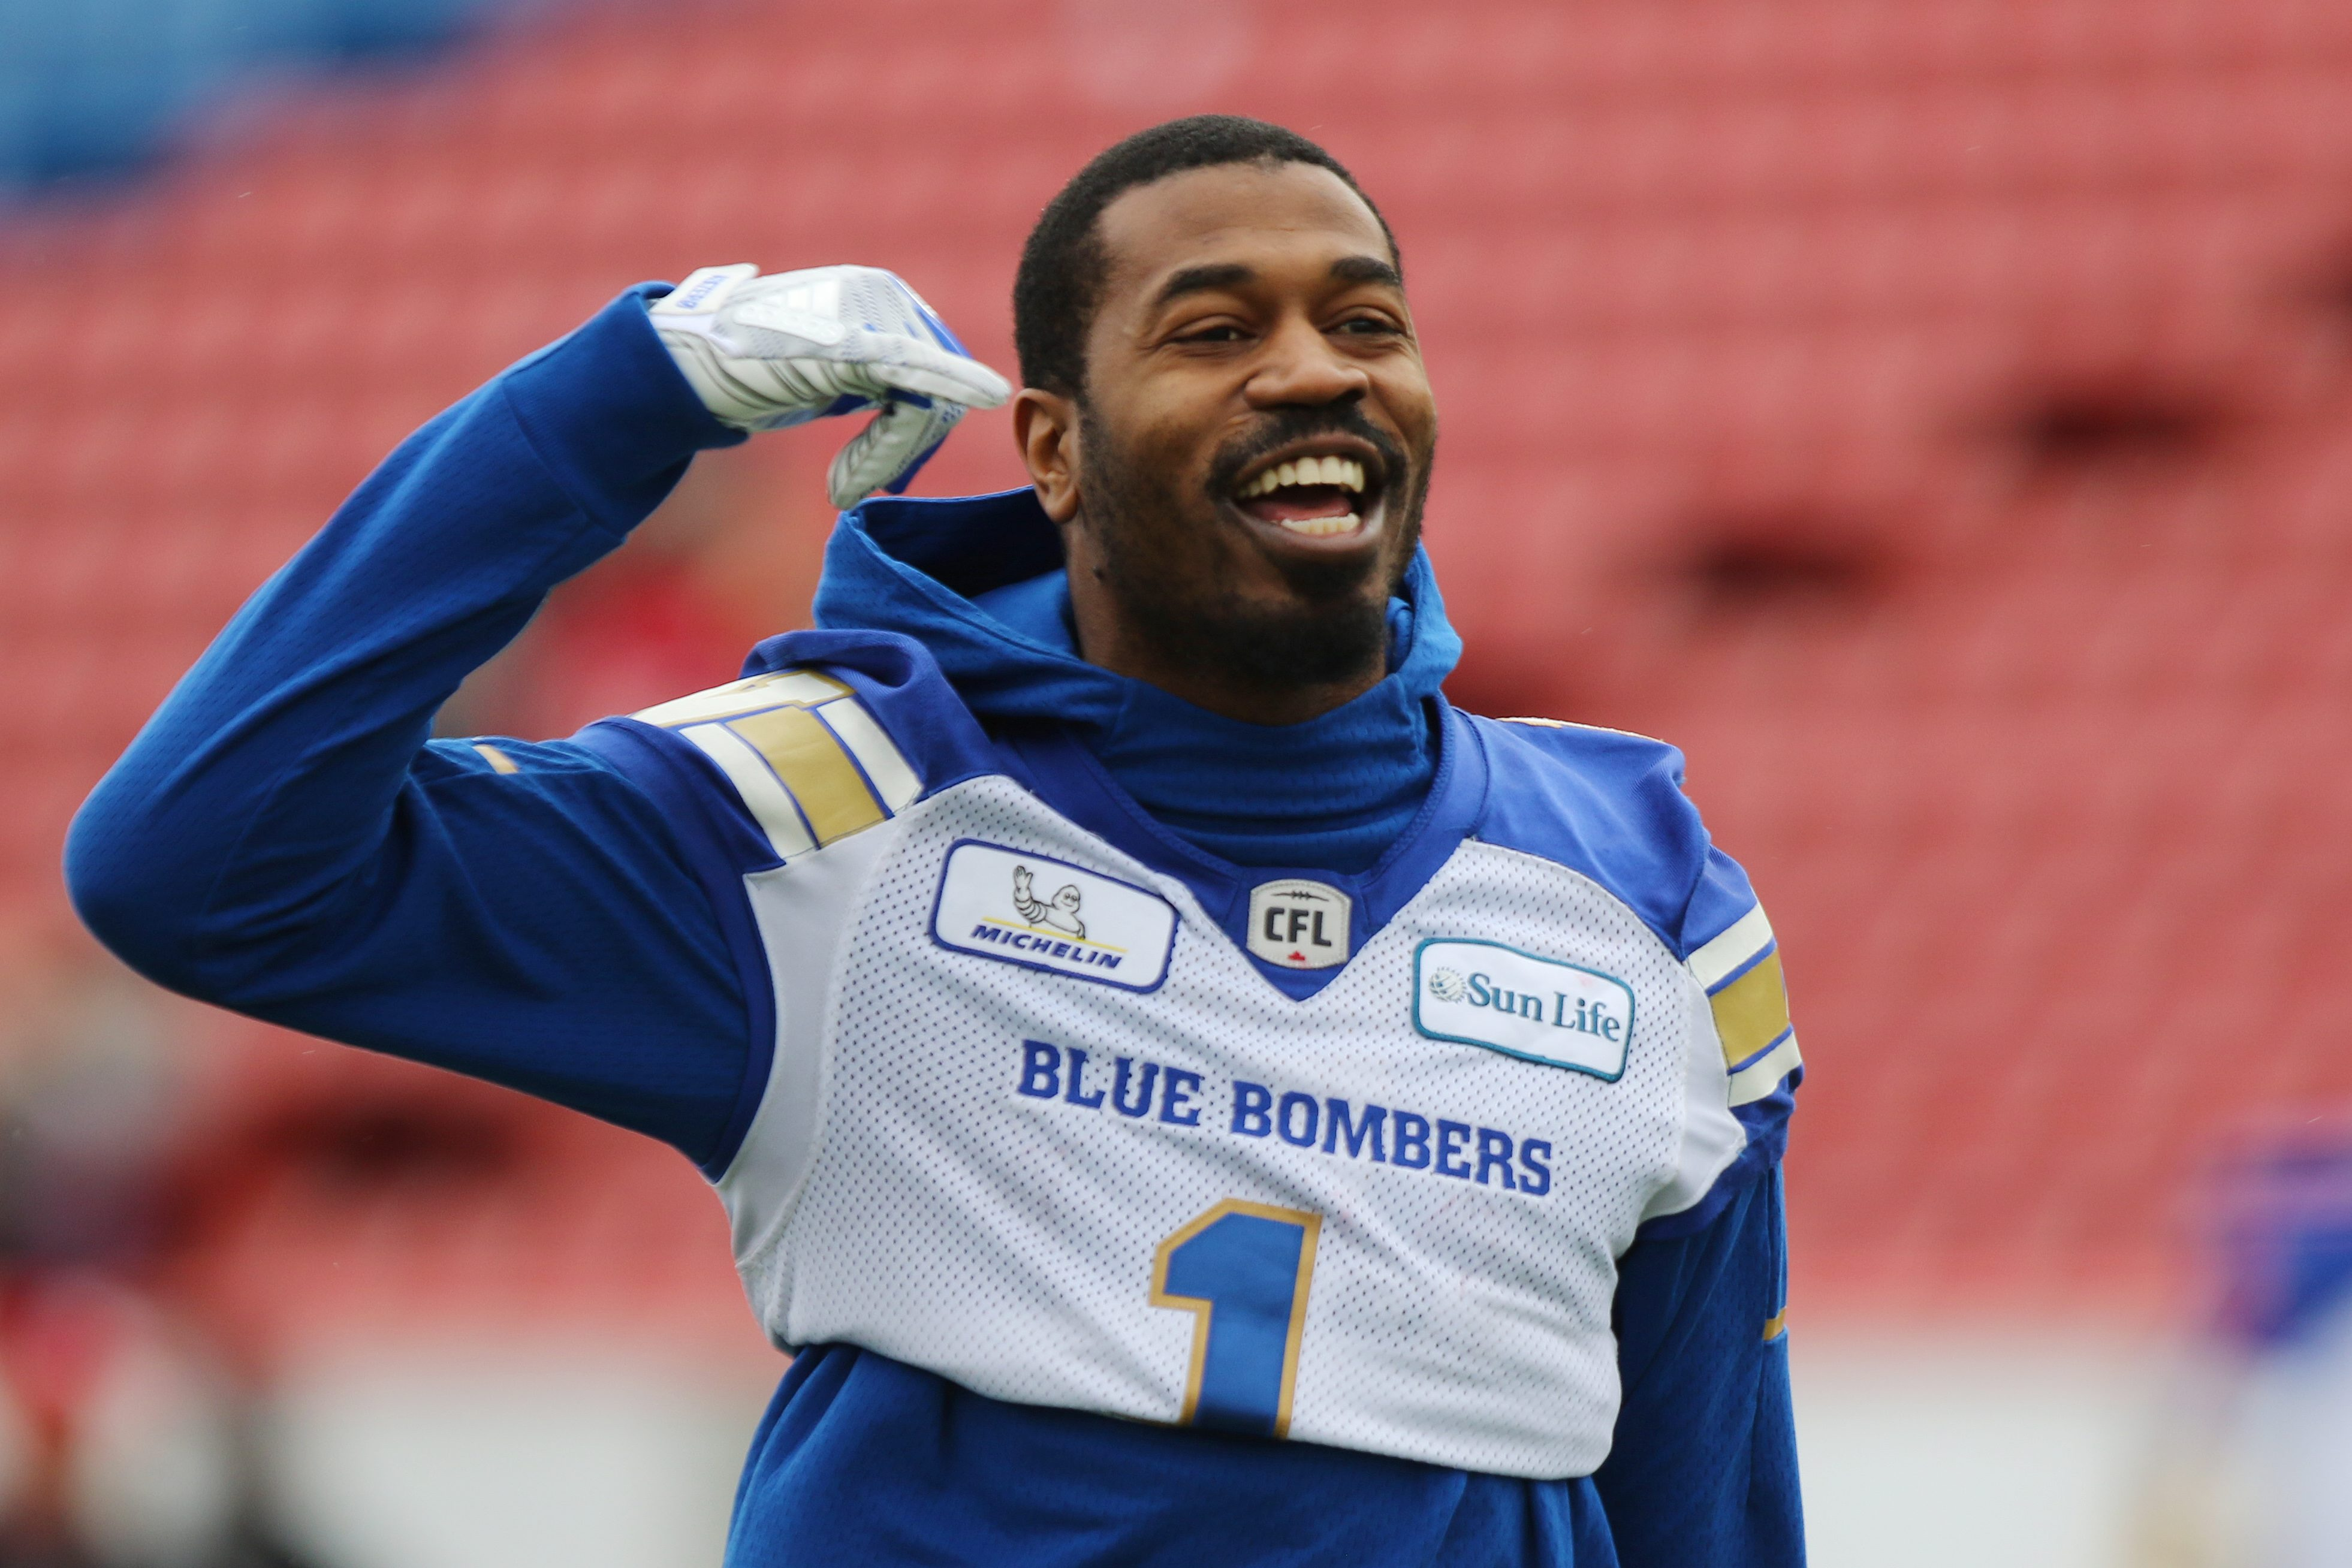 Bombers sign receiver Darvin Adams to a three-year extension - Winnipeg  Blue Bombers